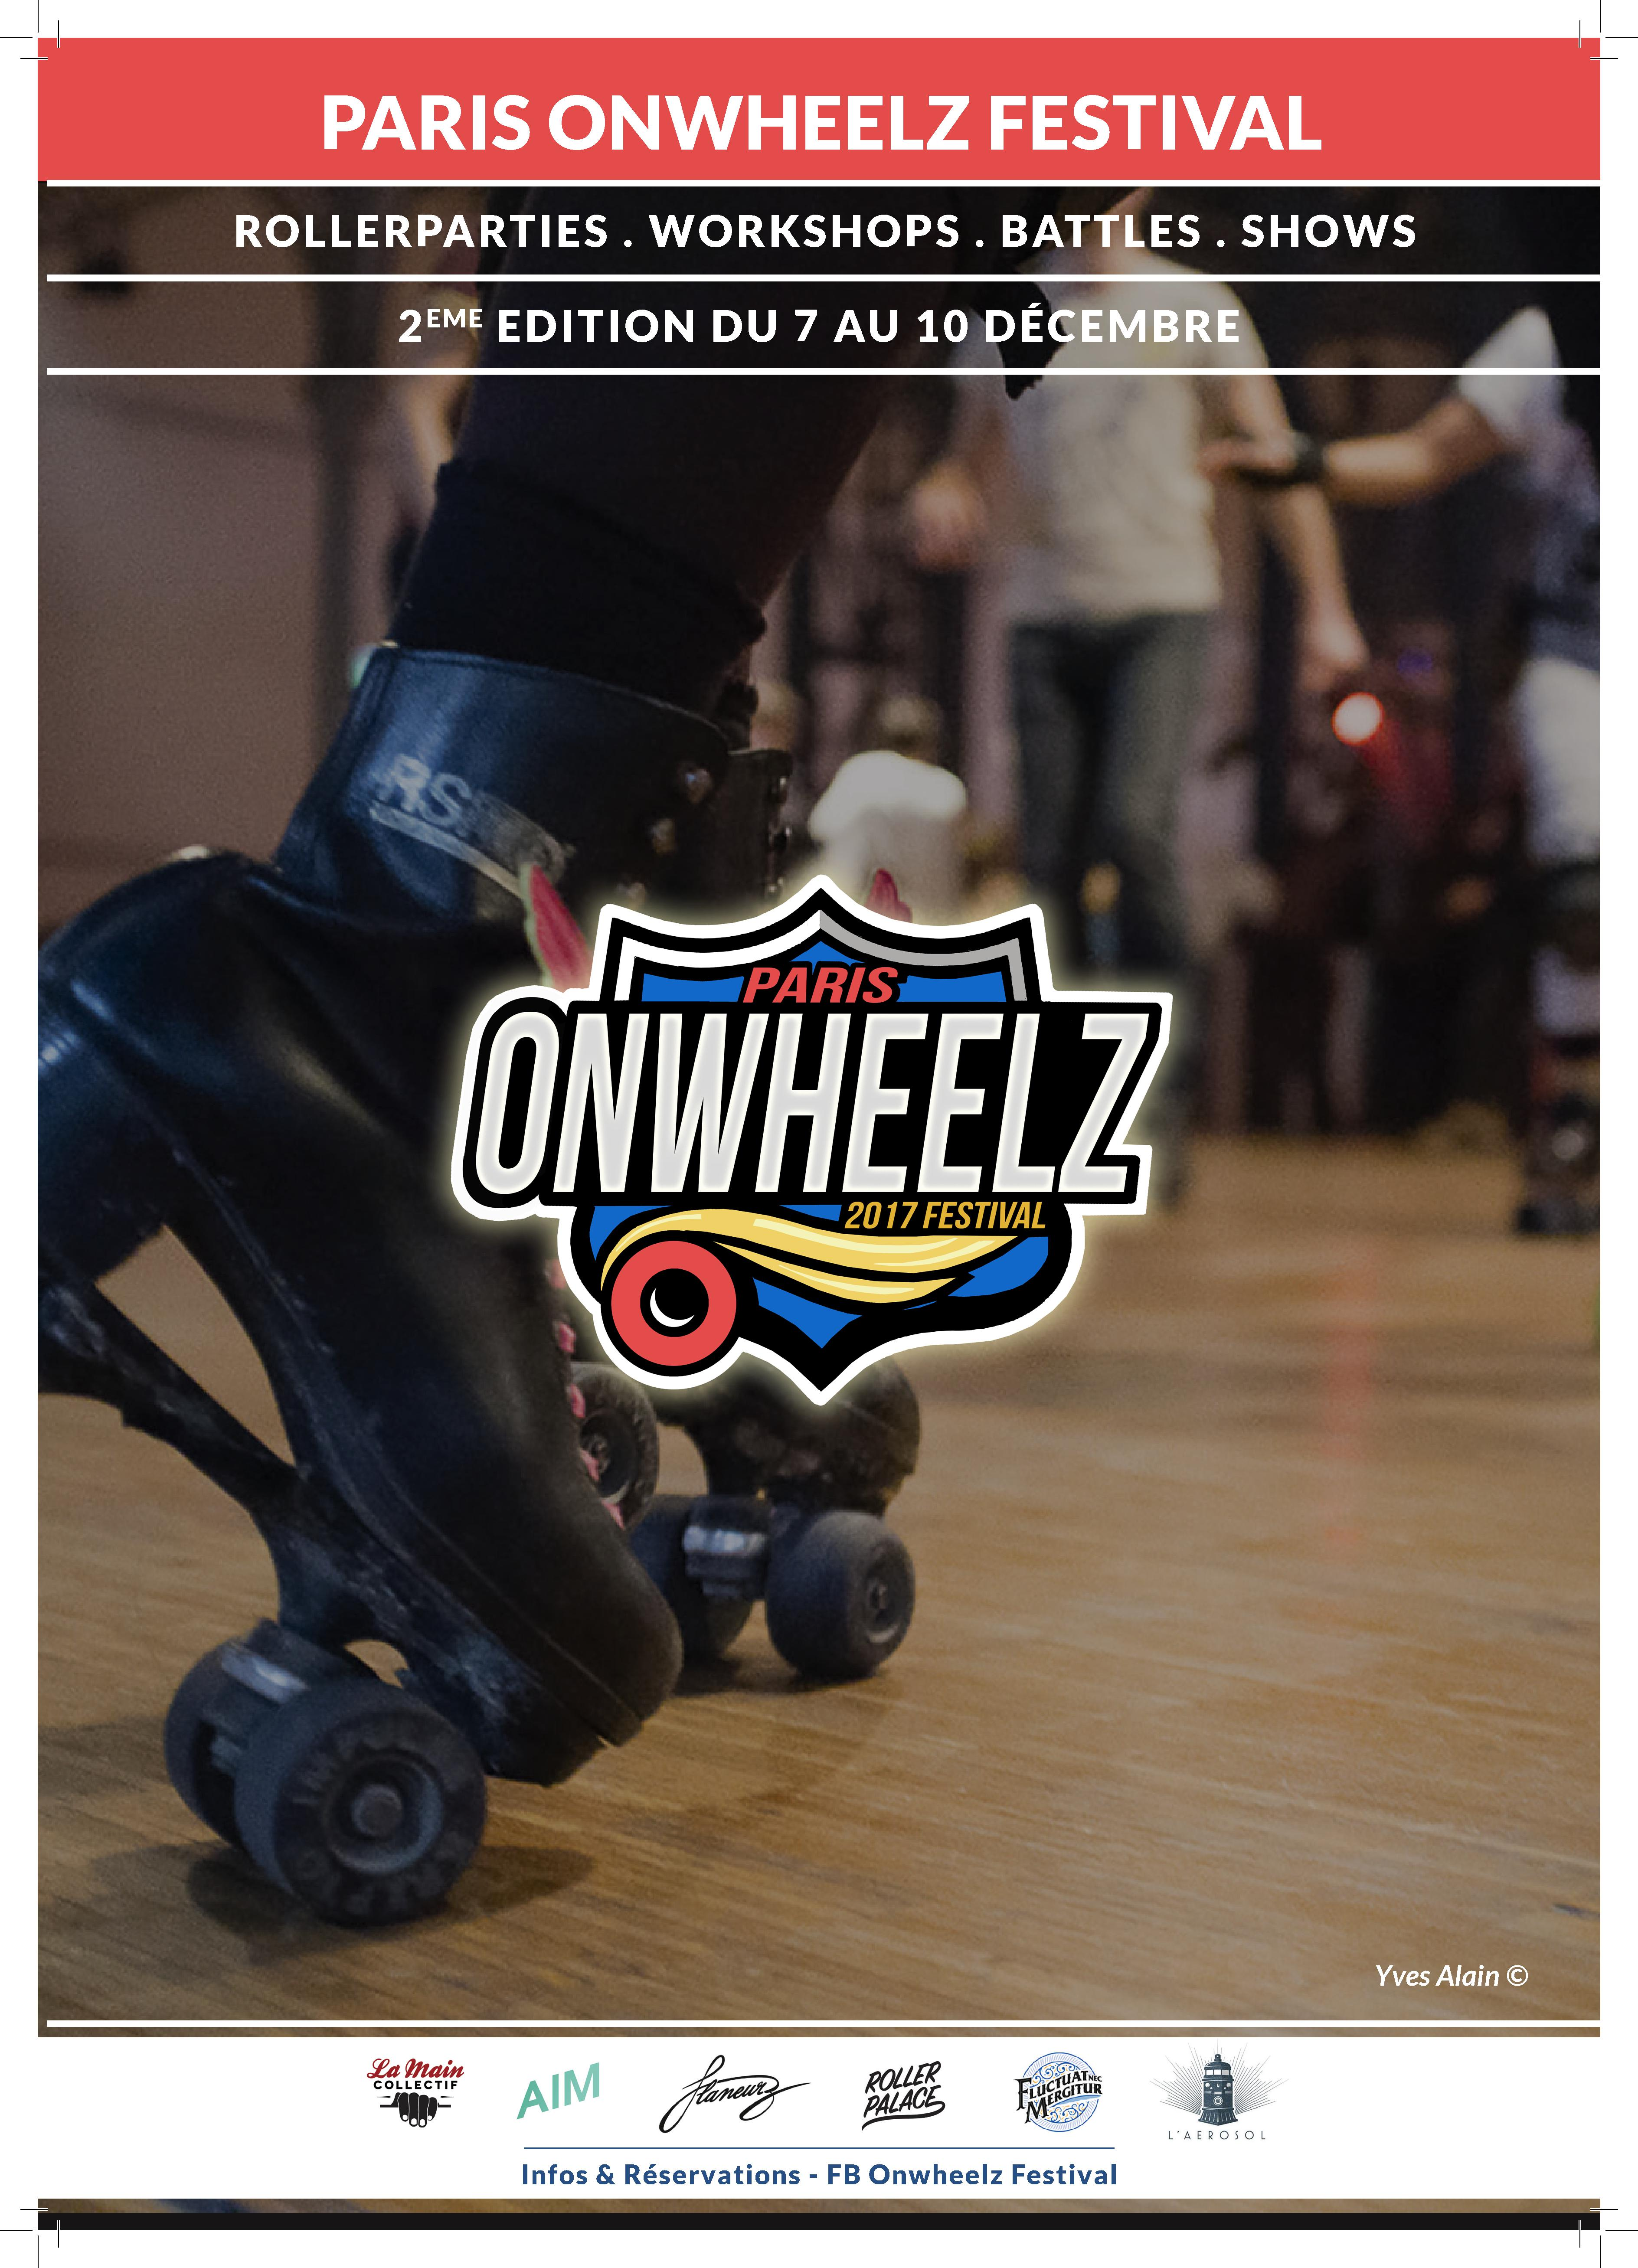 Paris Onwheelz Festival 2017 - La Main Collectif © Merlin Schemel & Yves Alain